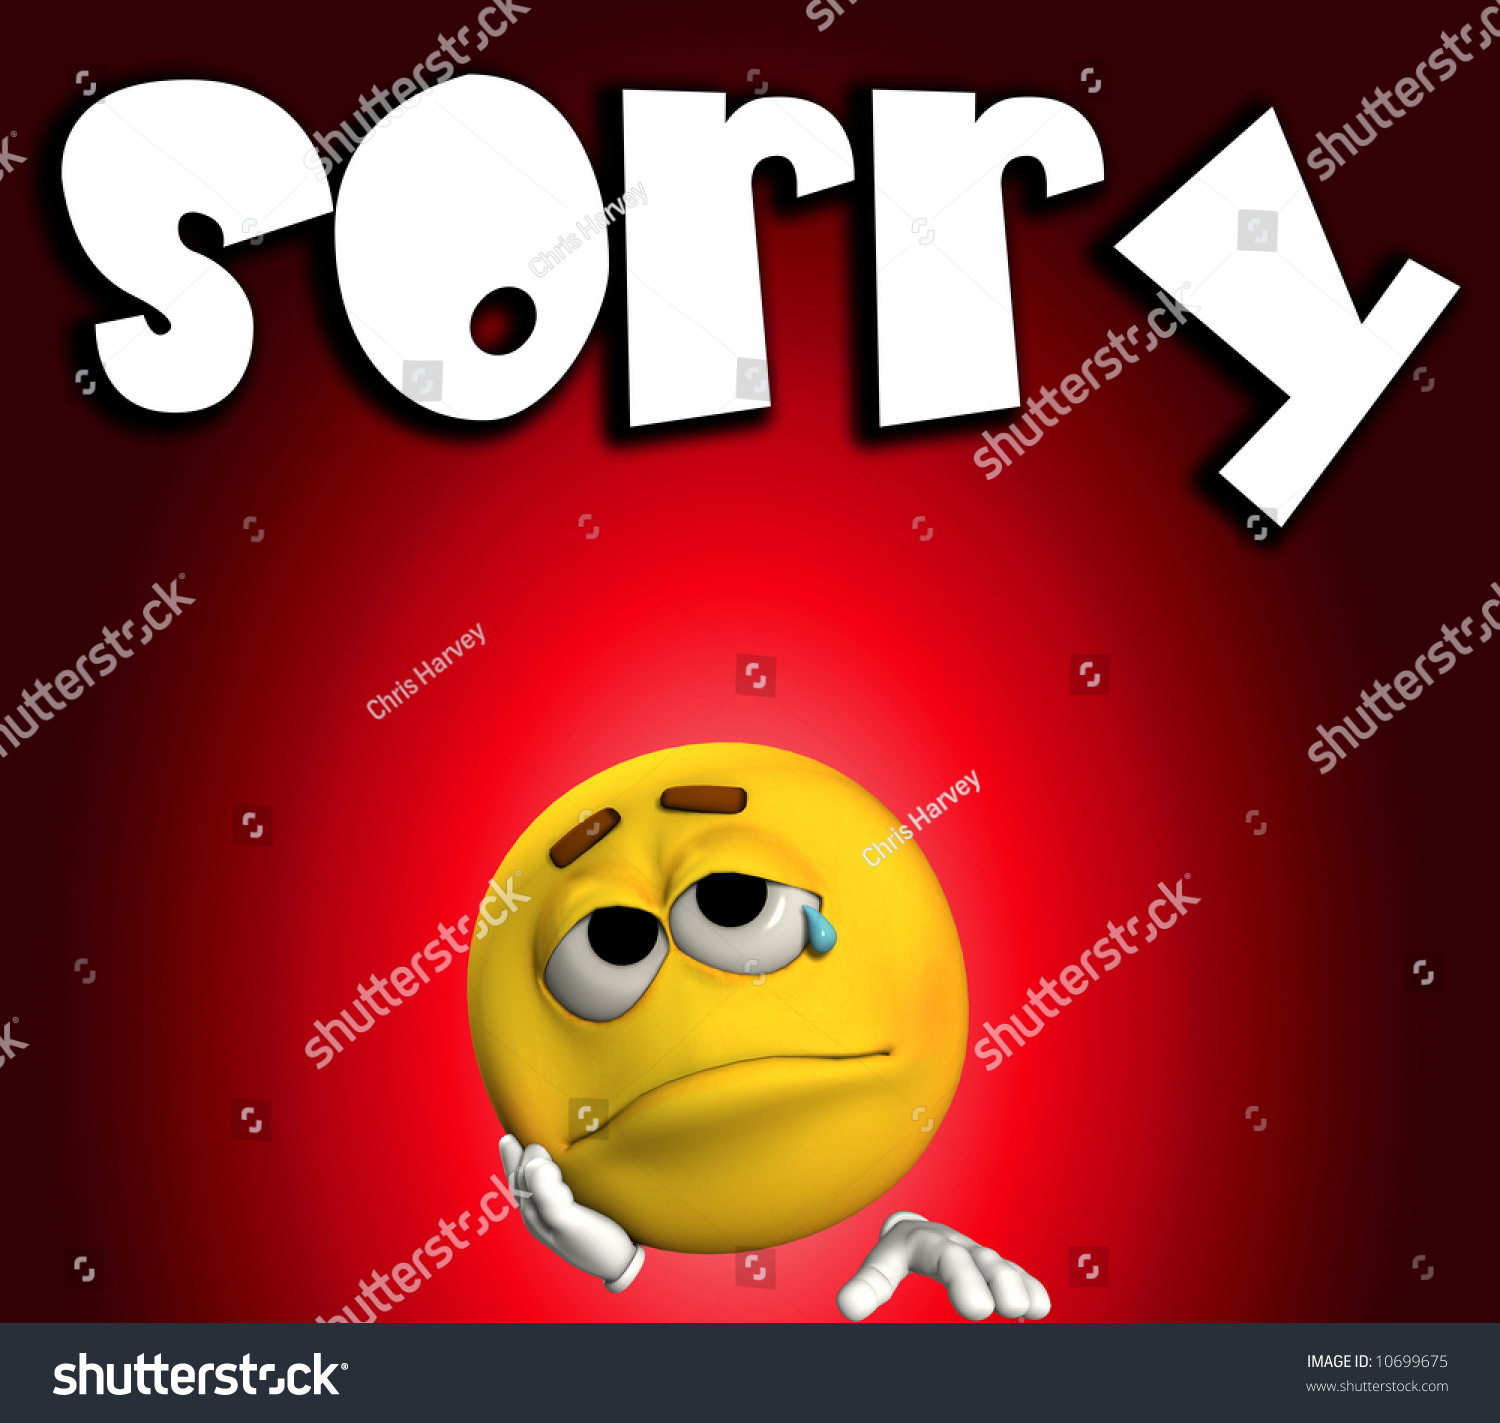 Sad Sorry Images: A Conceptual Image Of A Cartoon Face That Is Very Sad And